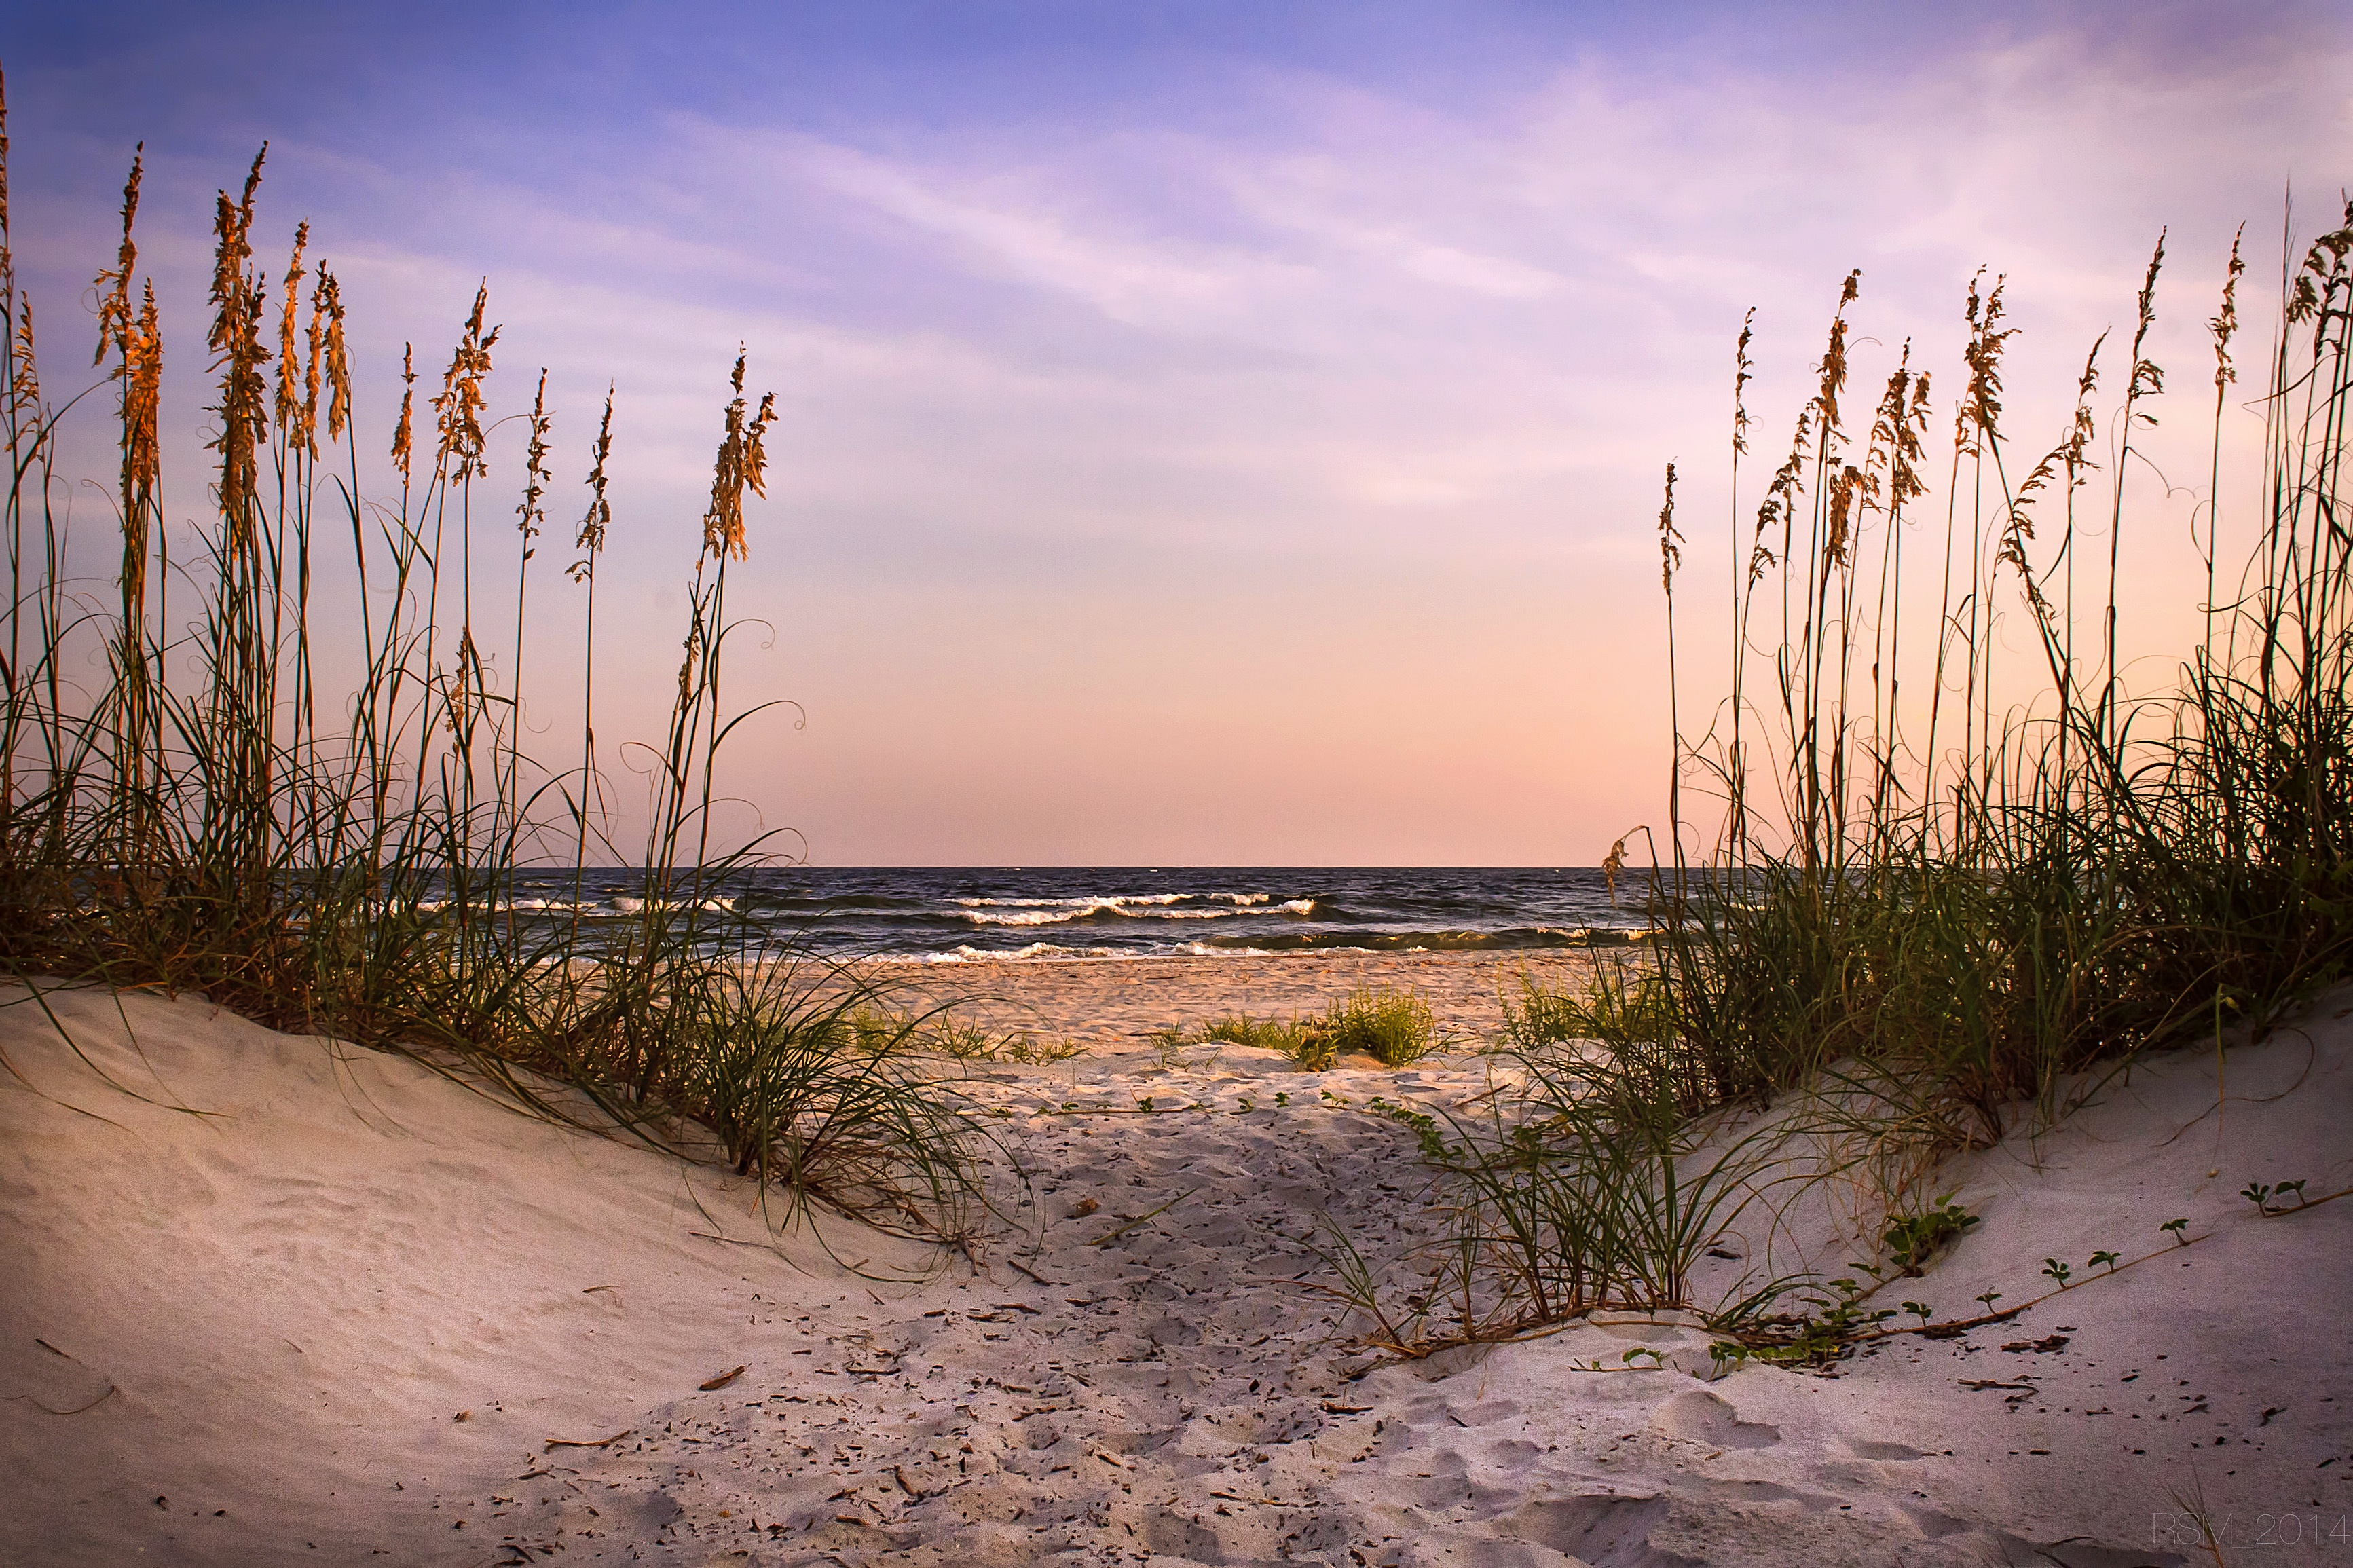 places to visit in georgia - Tybee Island